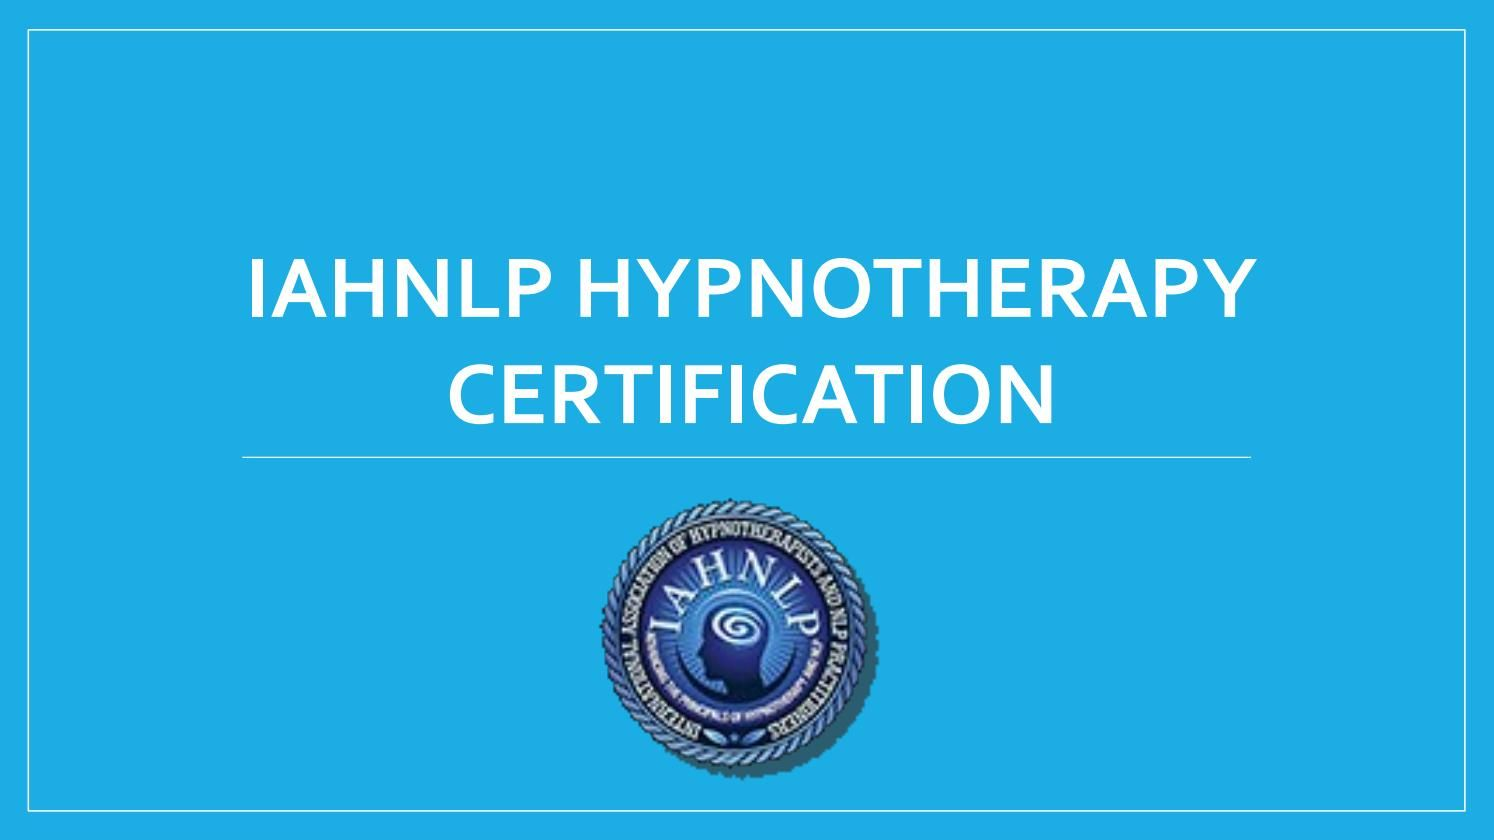 Iahnlp Hypnotherapy Certification Hypnotherapy